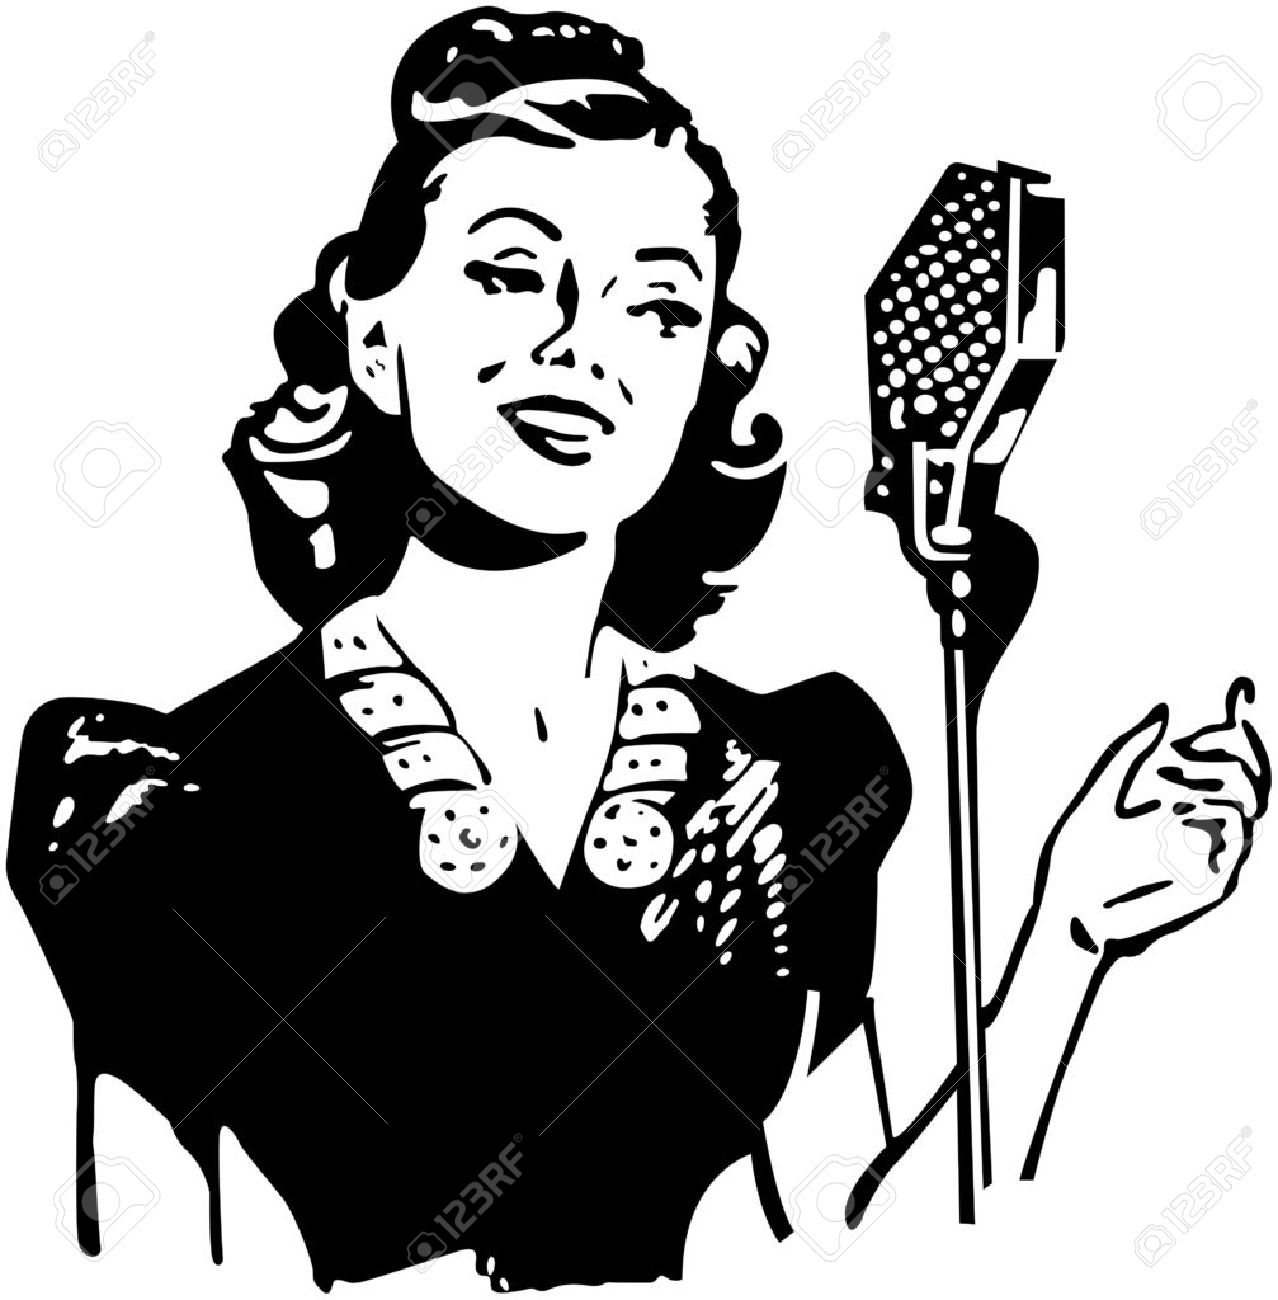 lady singer royalty free cliparts vectors and stock illustration African American Female Singers 1970s lady singer stock vector 28337745